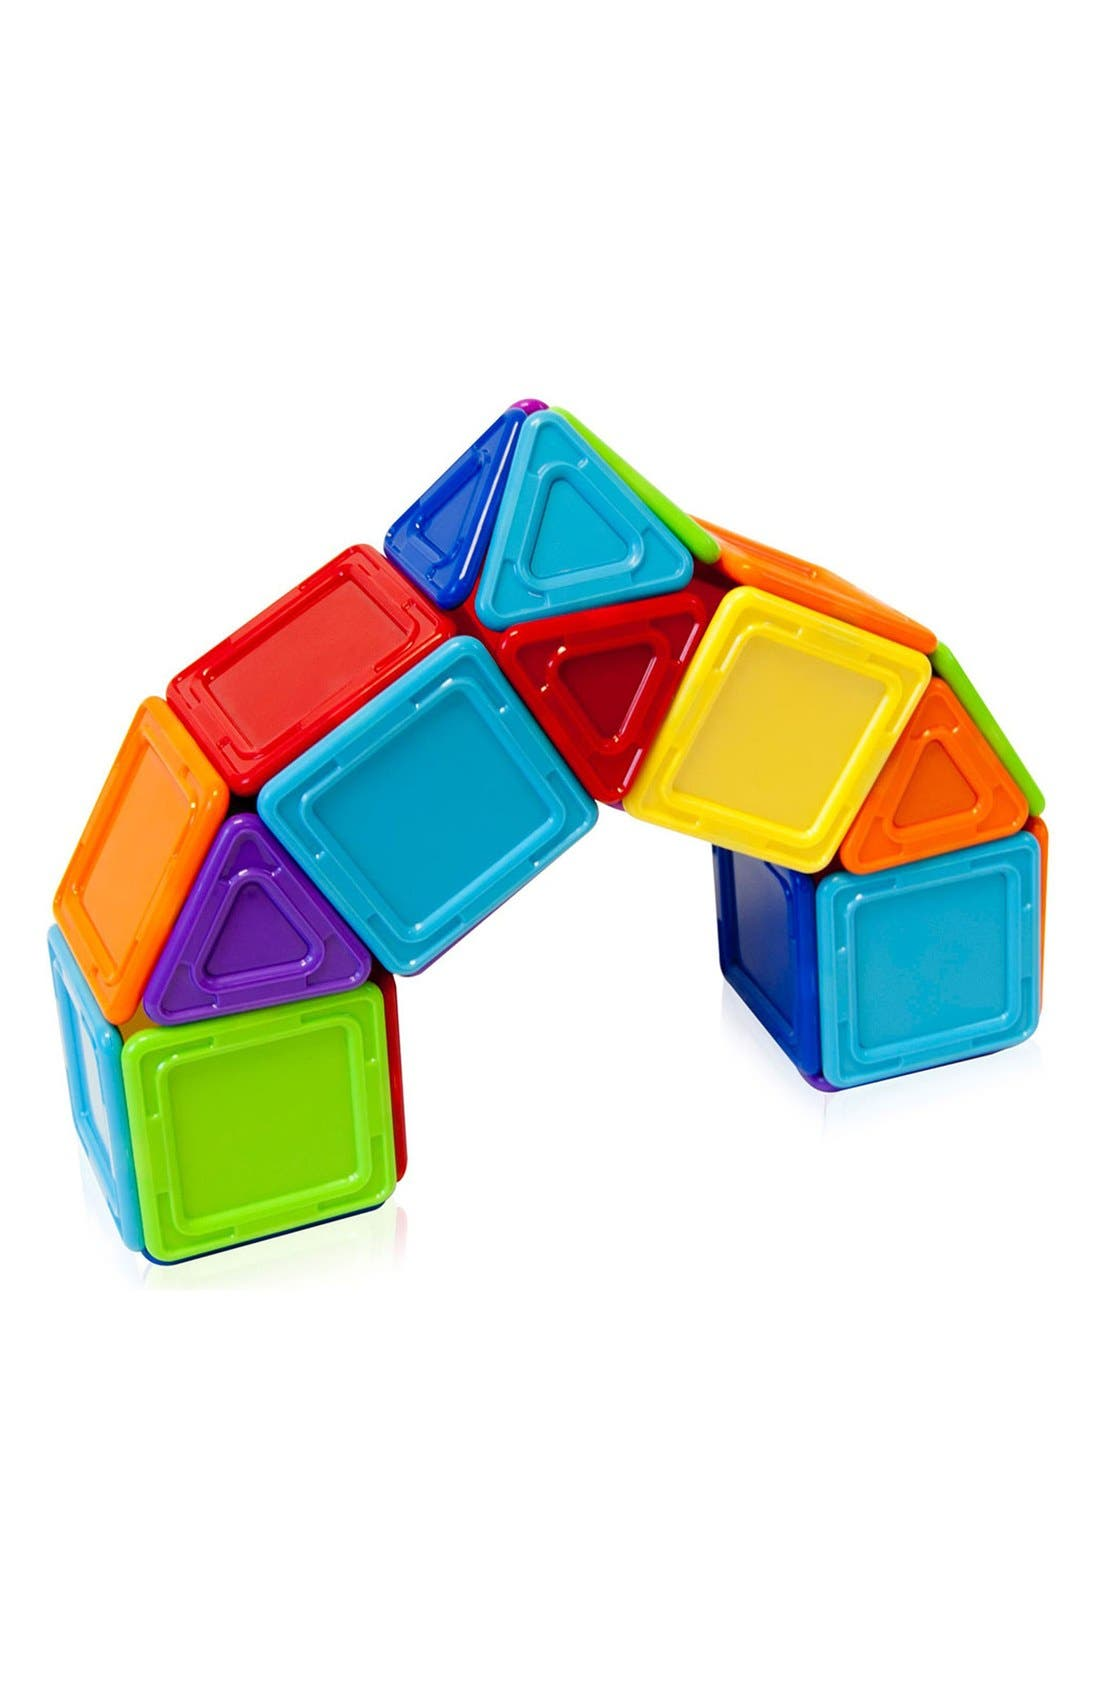 'Standard - Solids' Opaque Magnetic 3D Construction Set,                             Alternate thumbnail 5, color,                             Opaque Rainbow